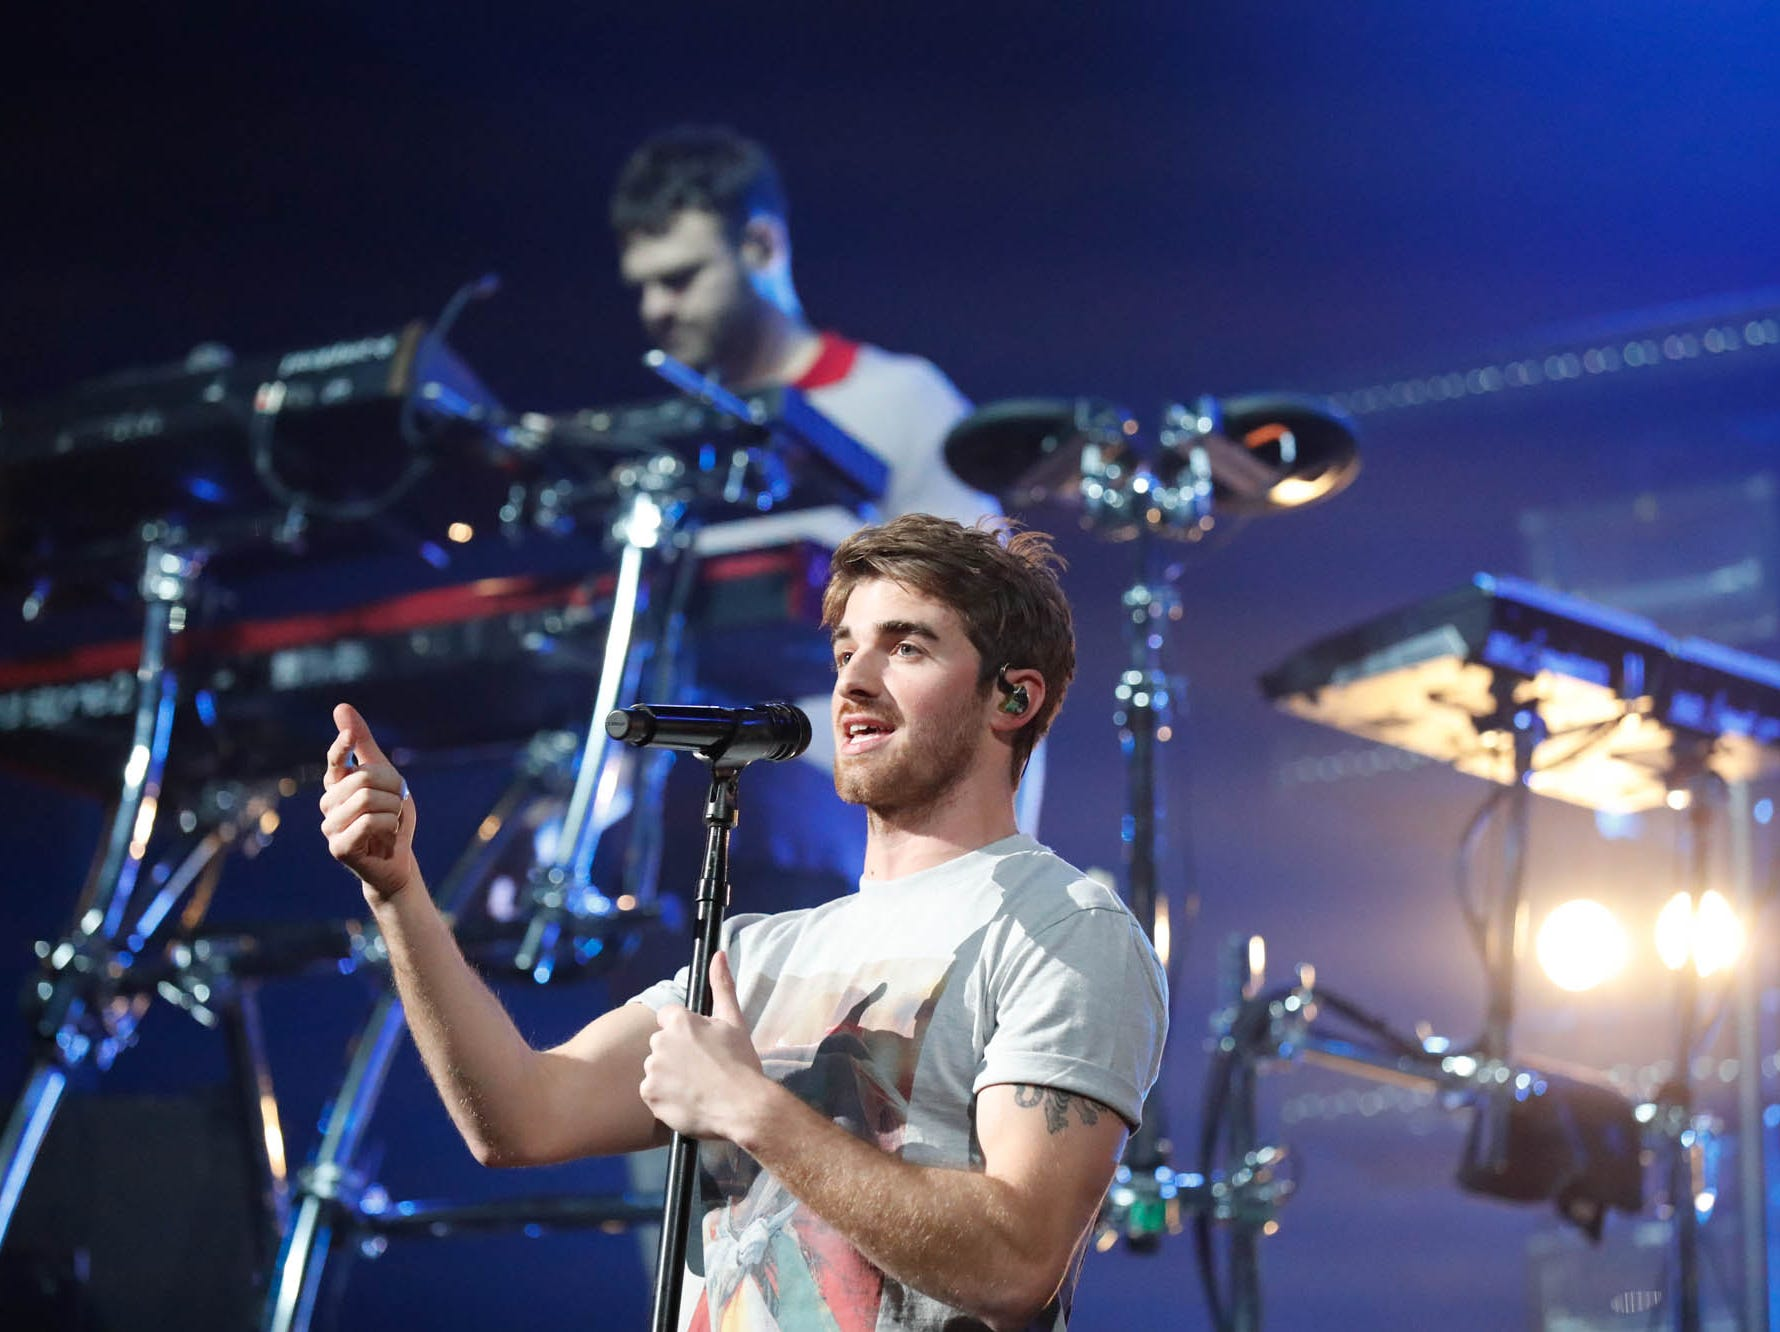 The Chainsmokers perform during the 2018 Jingle Jam concert at Bankers Life Fieldhouse in Indianapolis on Tuesday, Dec. 12, 2018.